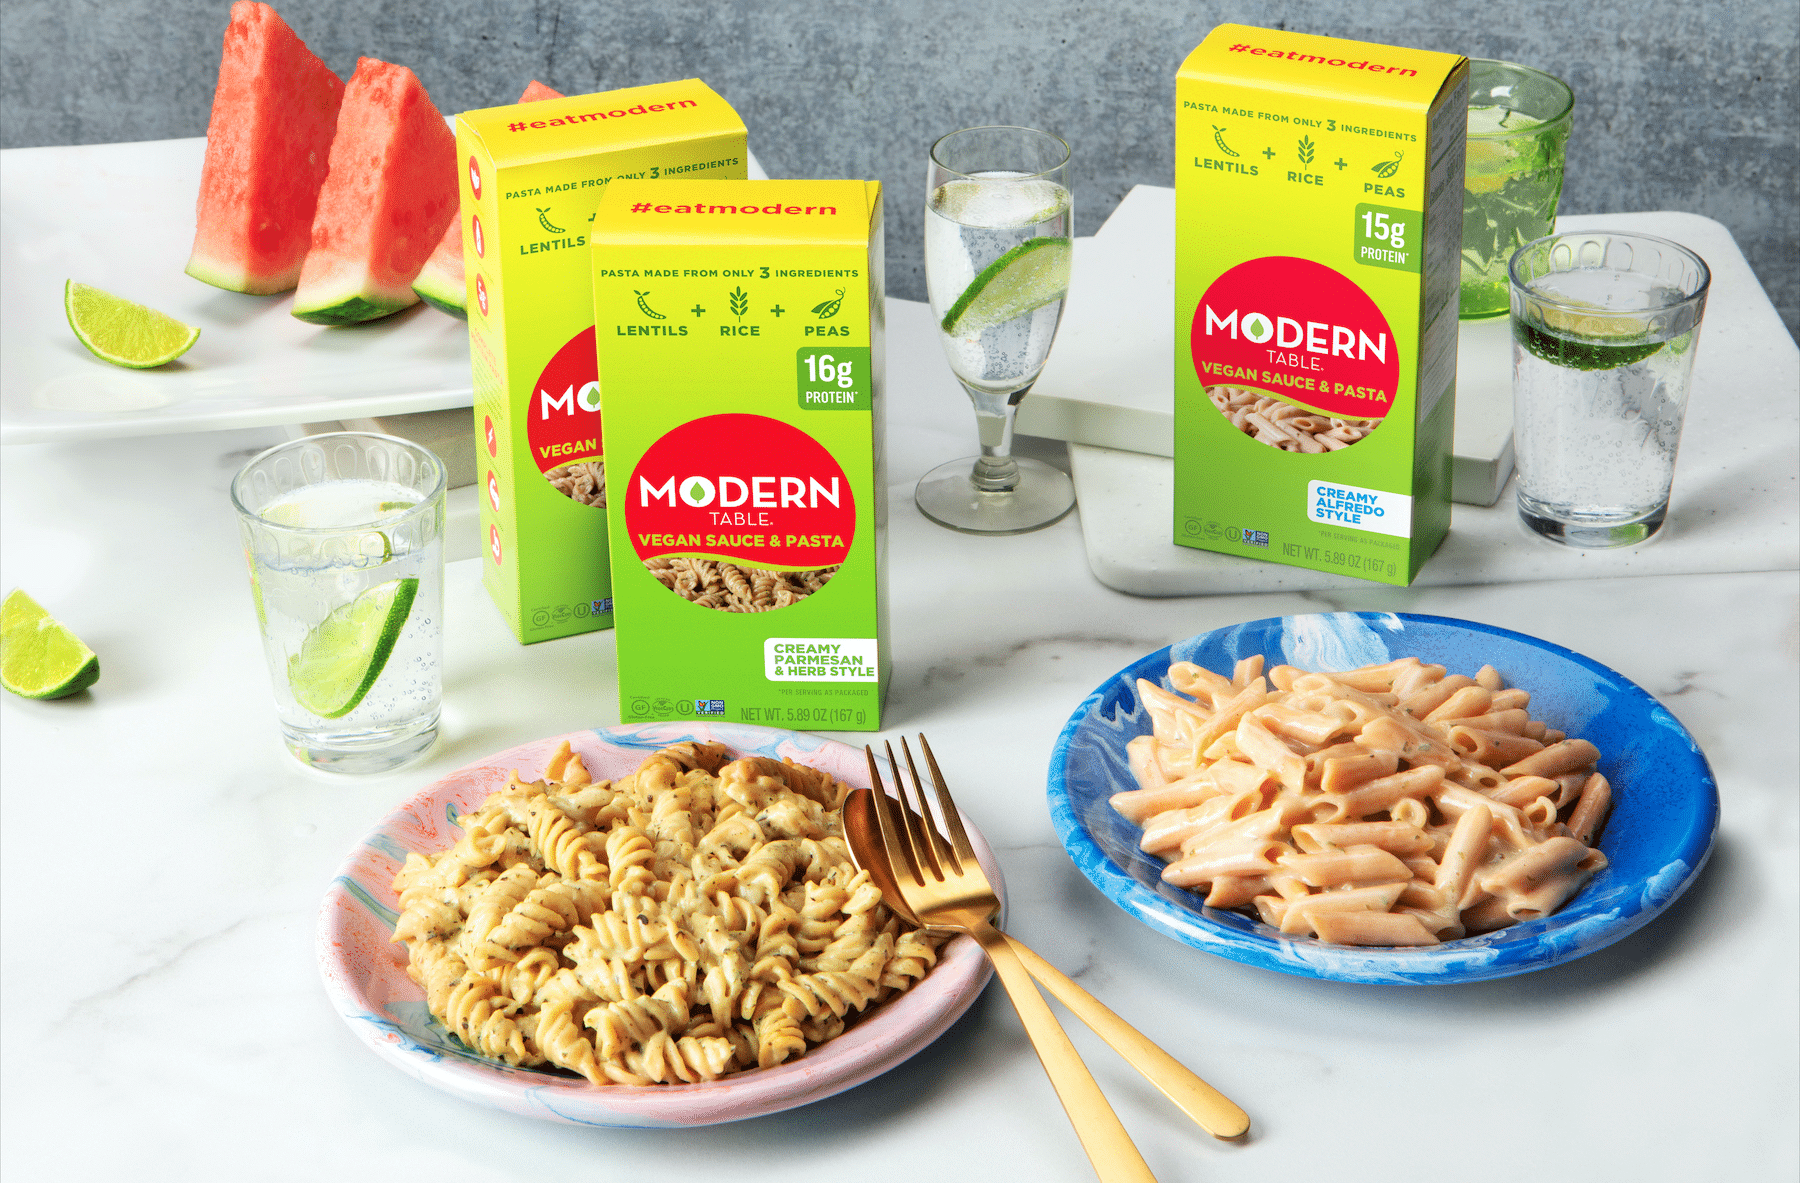 Modern Table Unveils New Line of Savory Vegan Pasta Meals